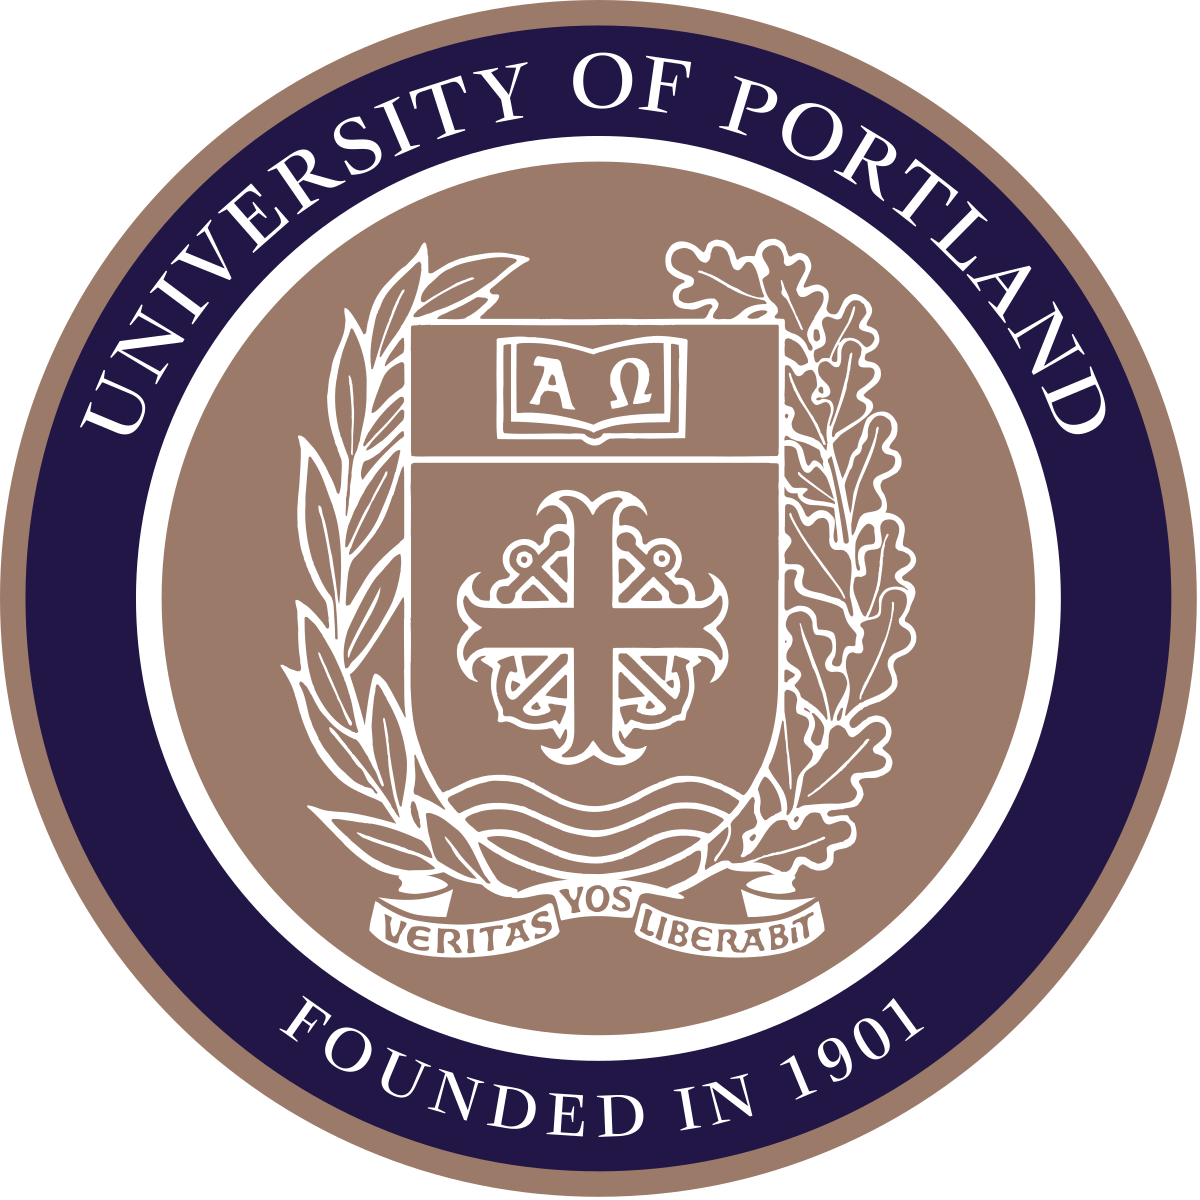 Engineering clipart drafter. University of portland wikipedia